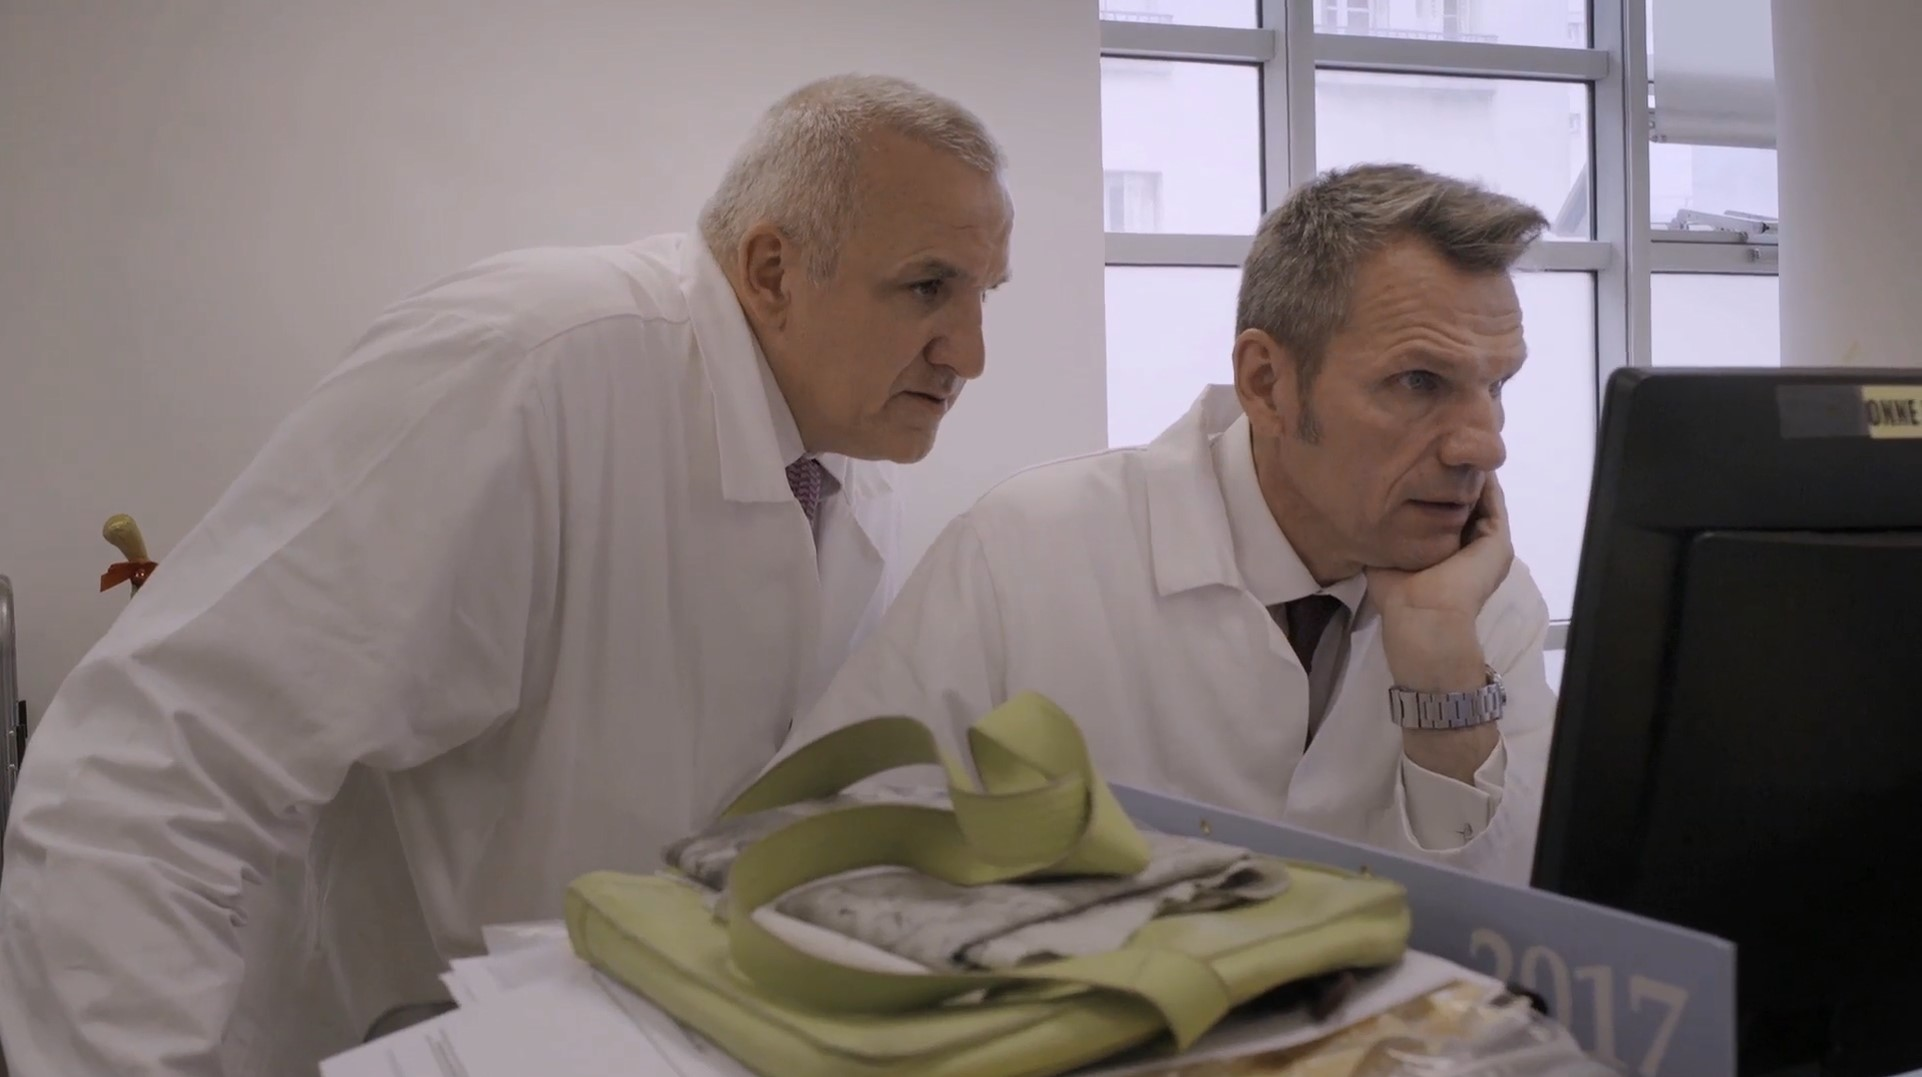 A still from the documentary.